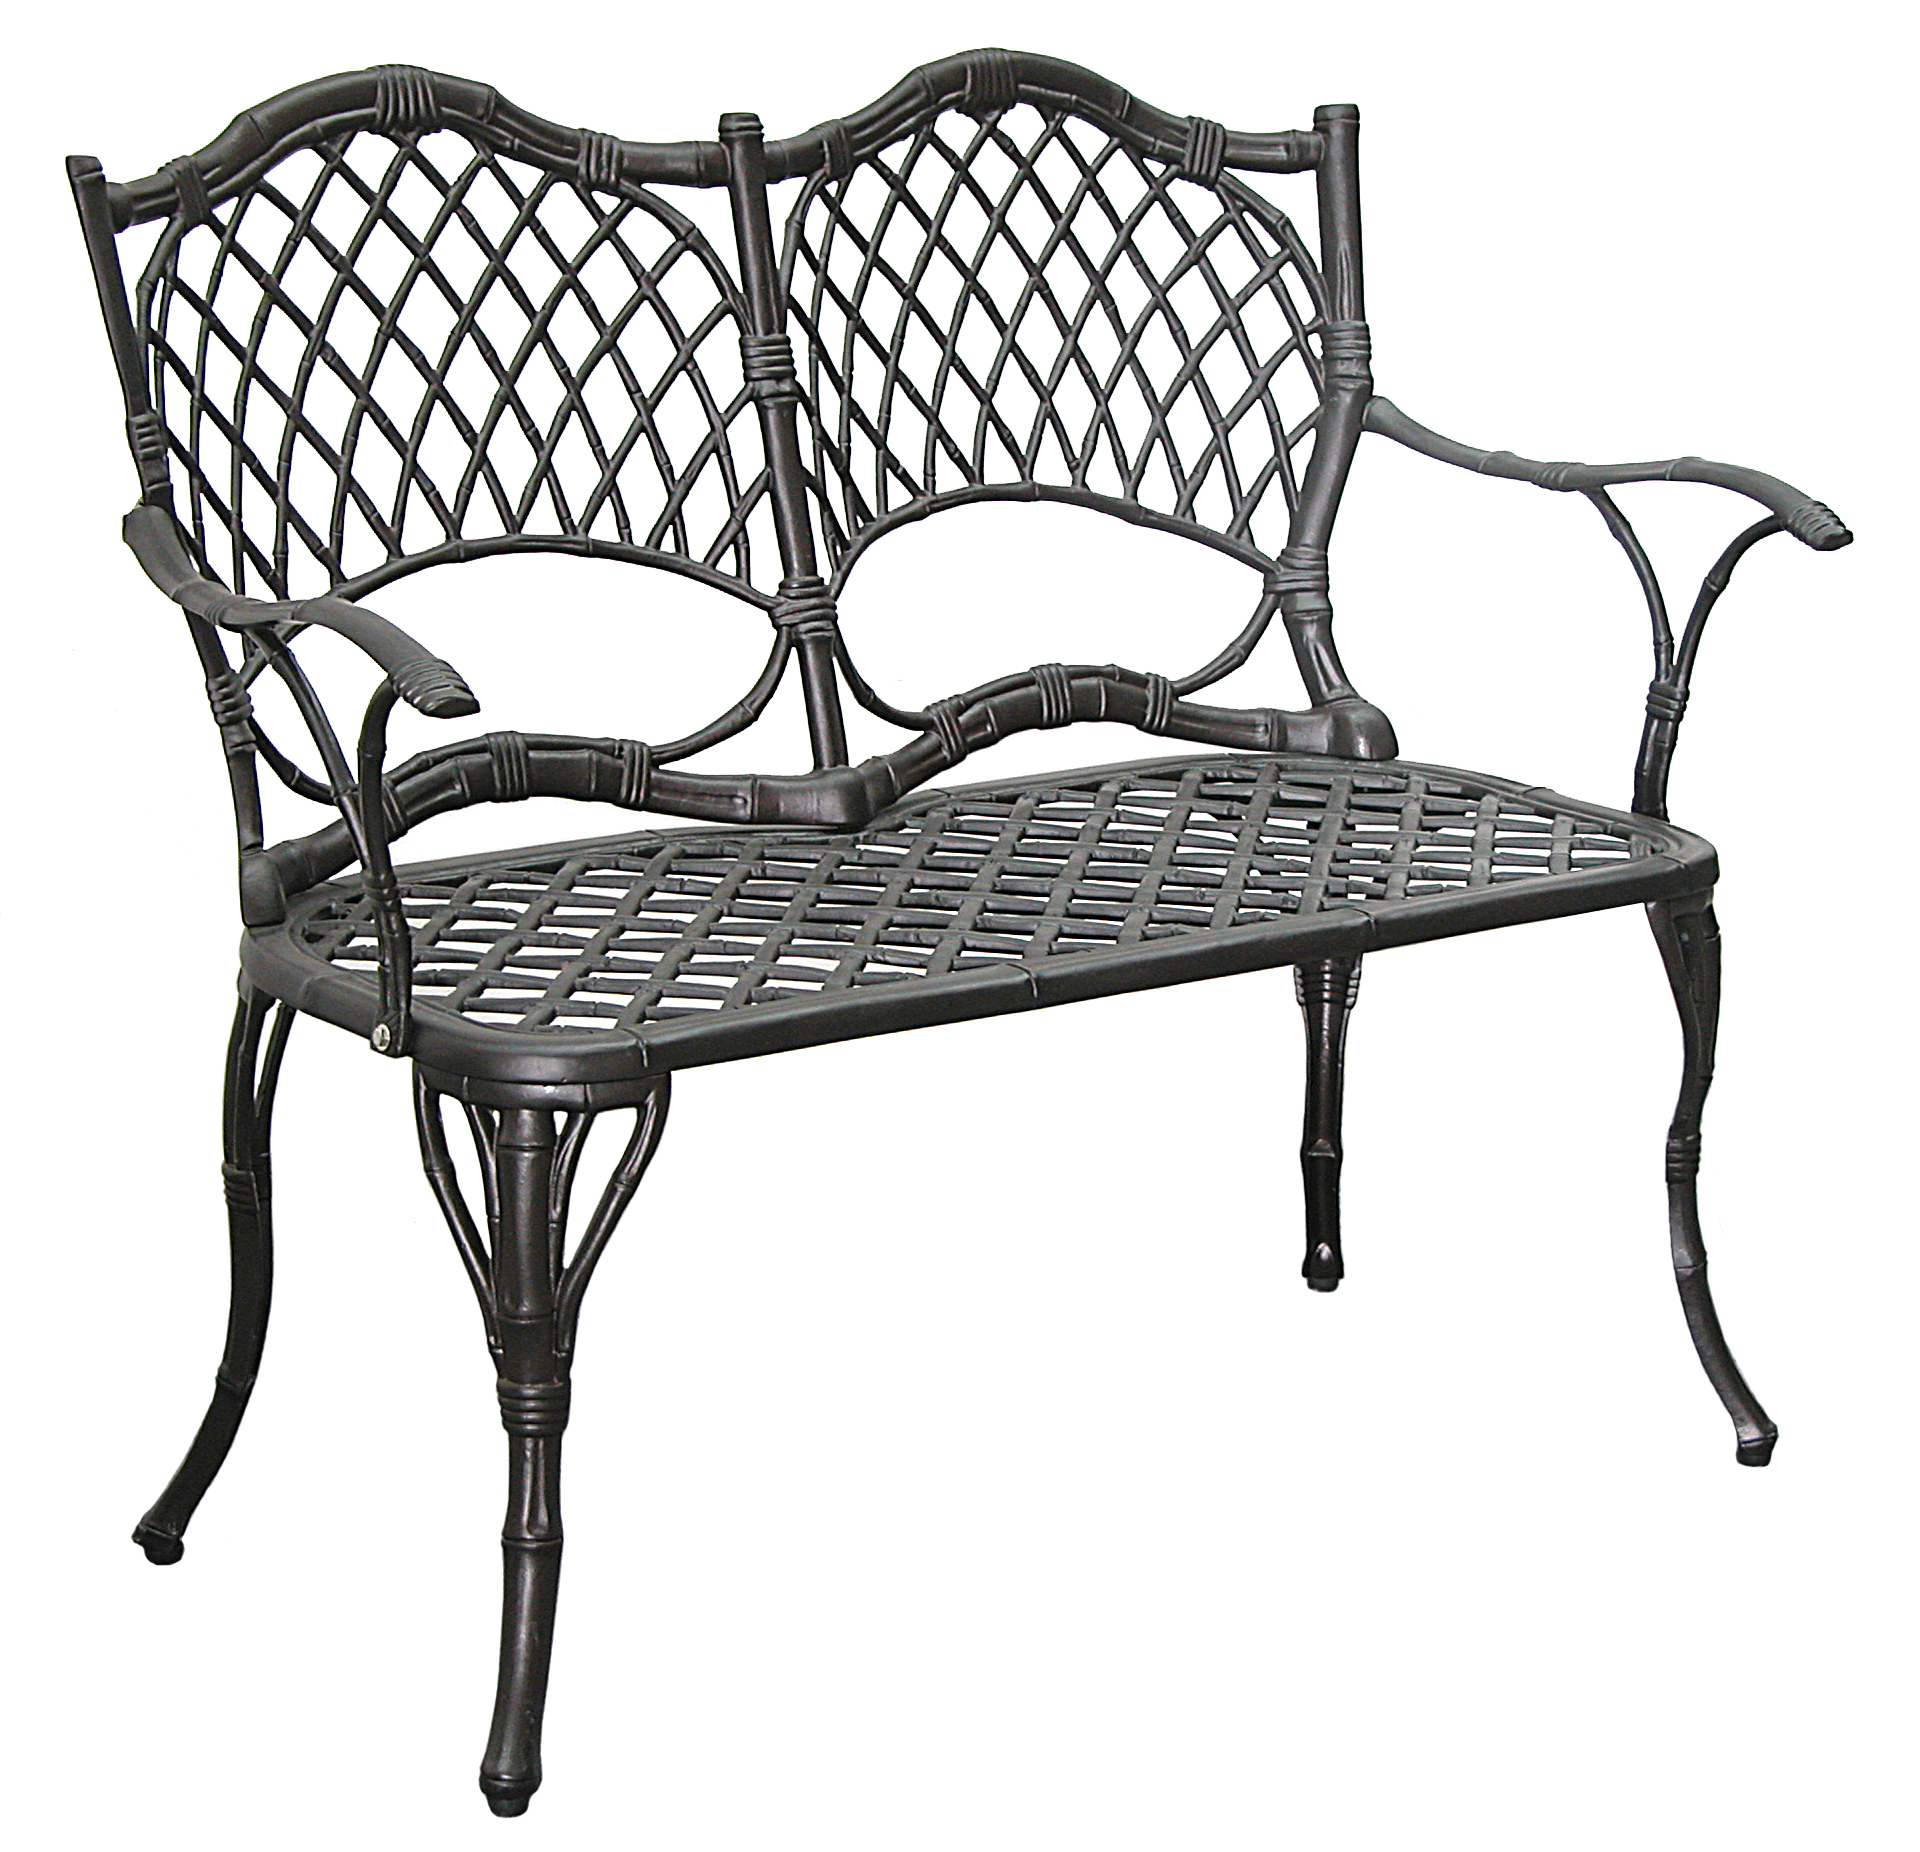 Patio Furniture Bench Cast Aluminum Iron Loveseat Black Bamboo